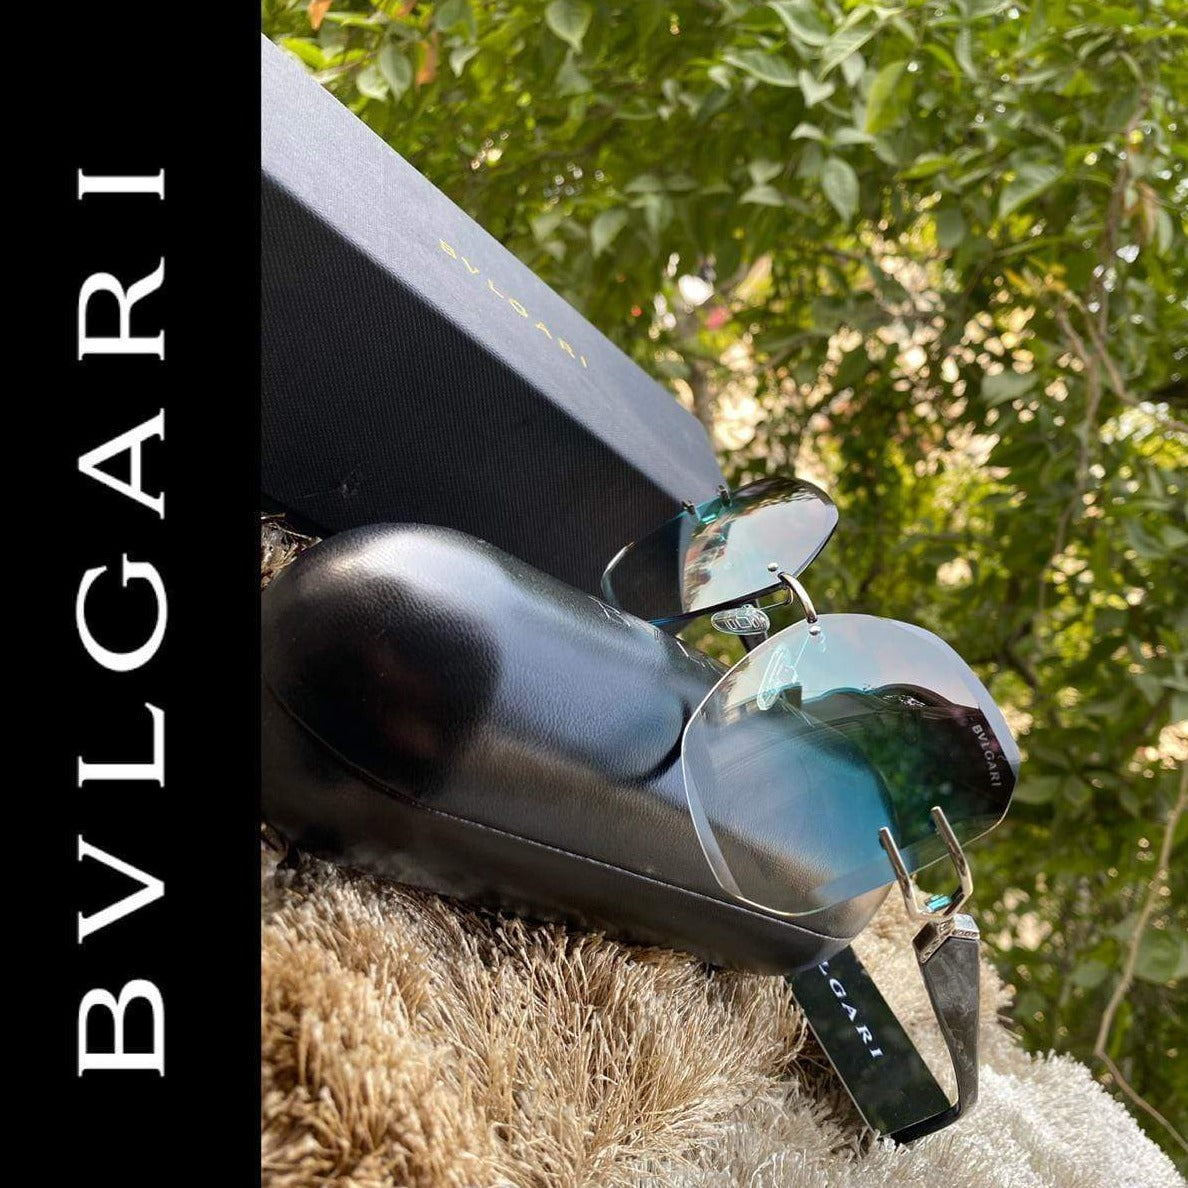 First Copy Bvlgari Sunglass for Her